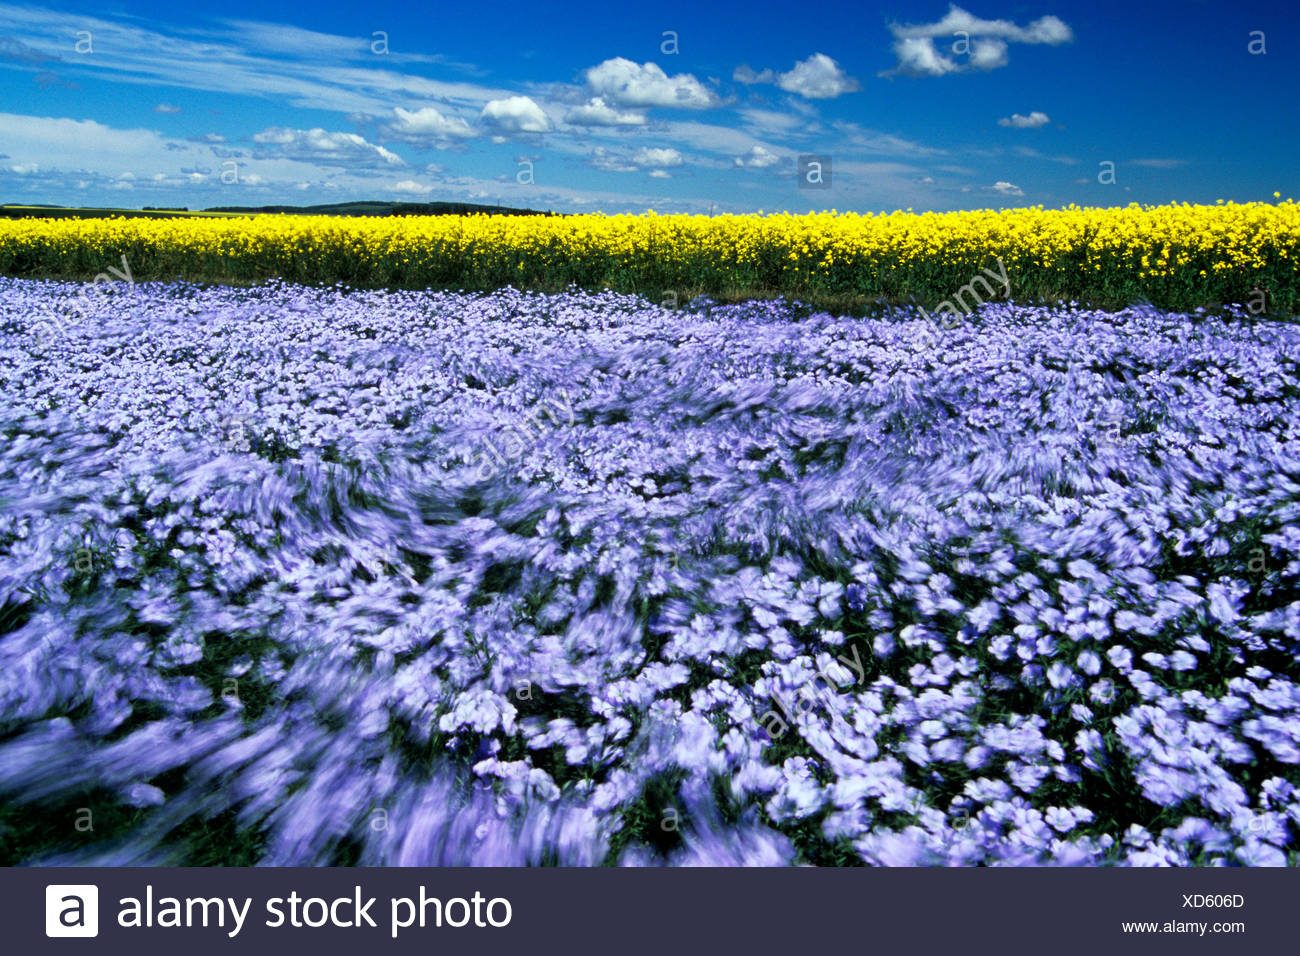 Windblown flowering flax field with canola in the background near Somerset, Manitoba, Canada - Stock Image